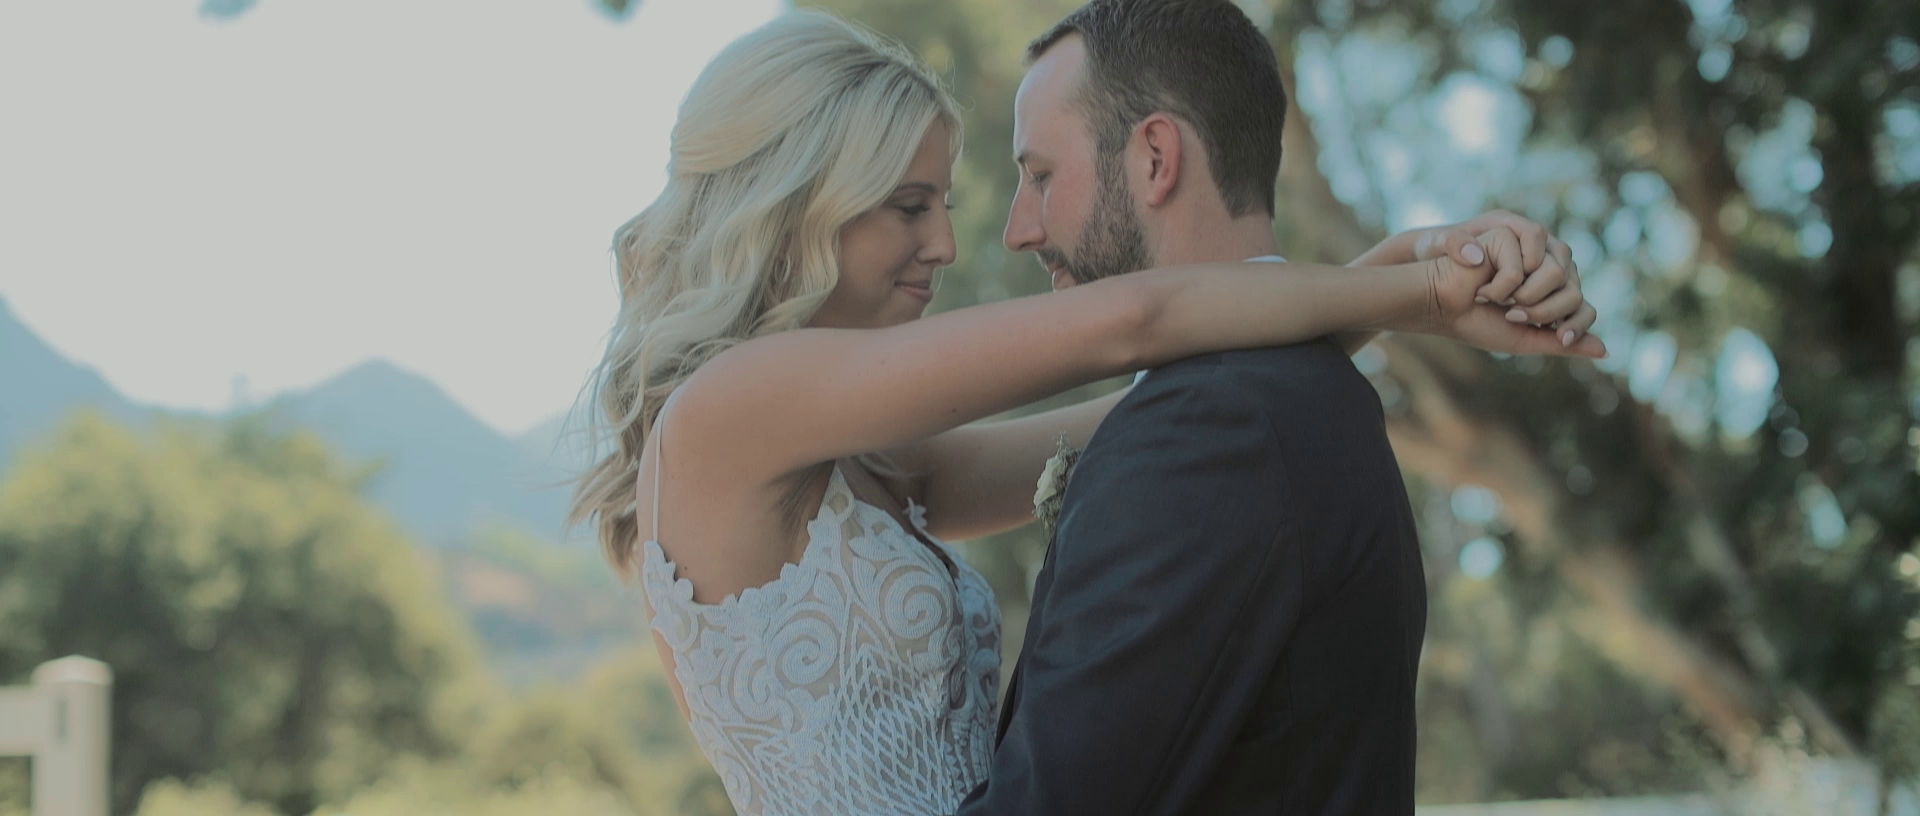 Hannah + Nick | Agoura Hills, California | Brookview Ranch